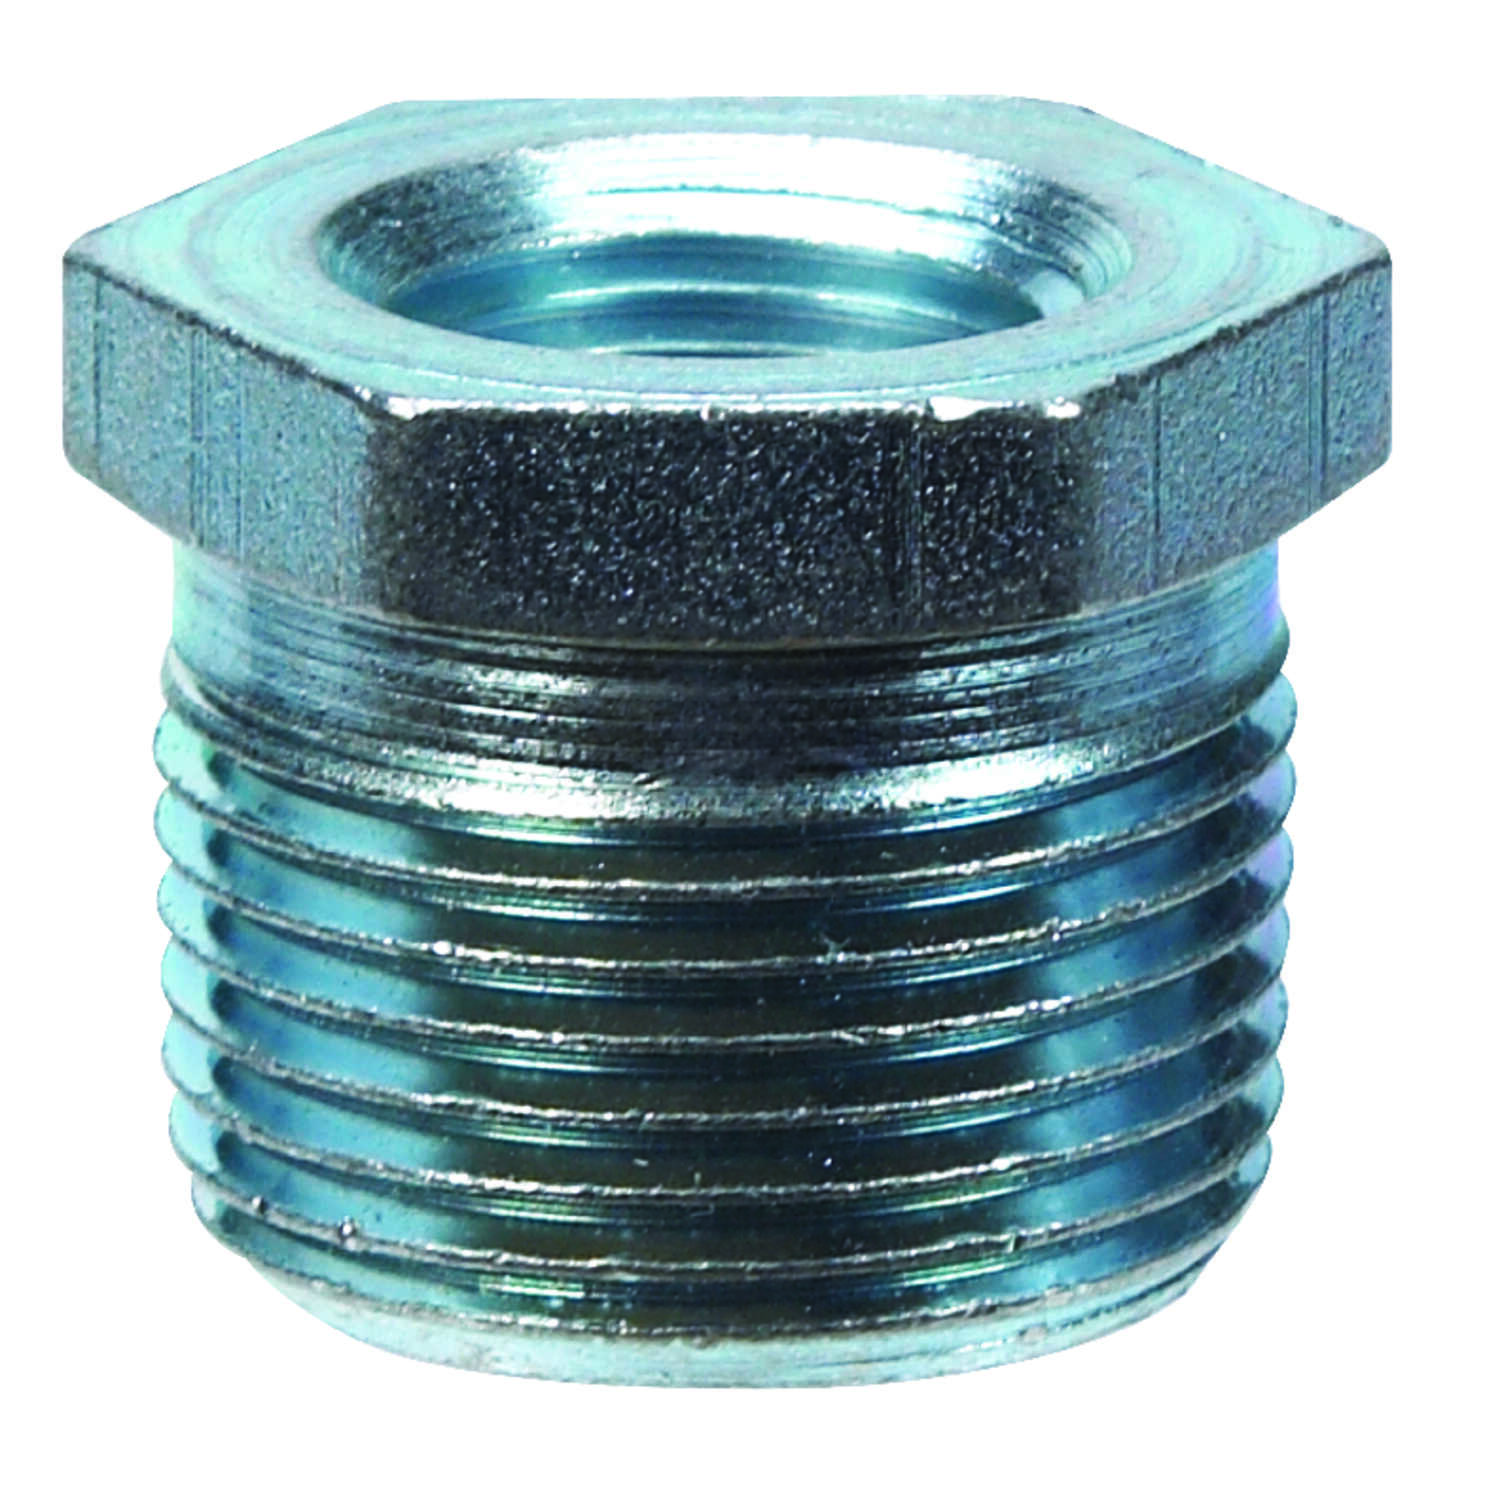 Billco  3/4 in. MPT  1/2 in. Dia. MPT  Galvanized Steel  Hex Bushing